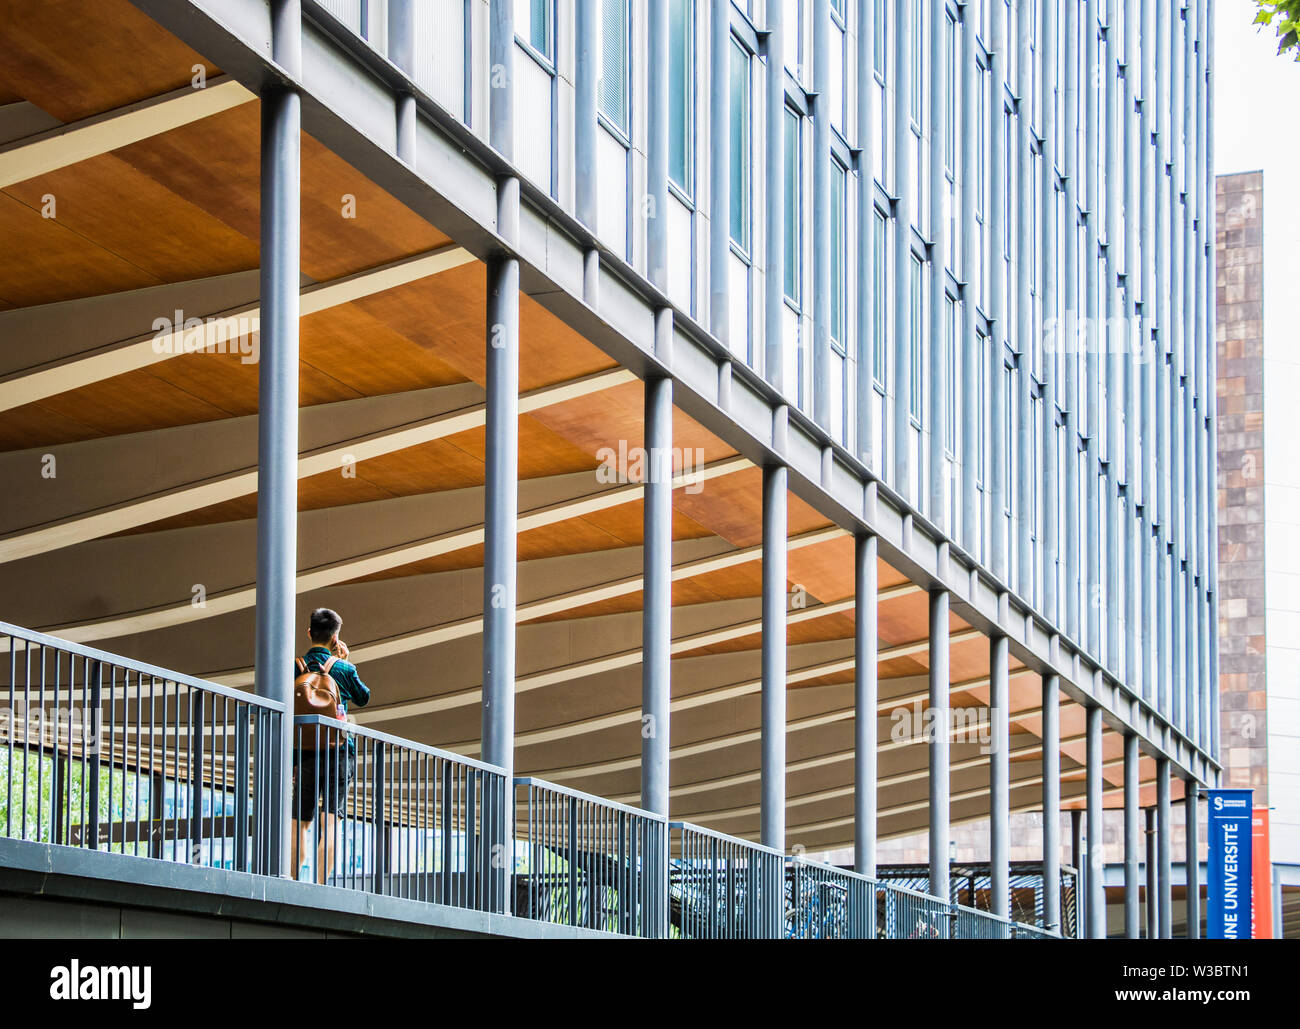 Paris, France - July 8, 2019: Student on phone at Sorbonne University campus in Paris, France - Stock Image